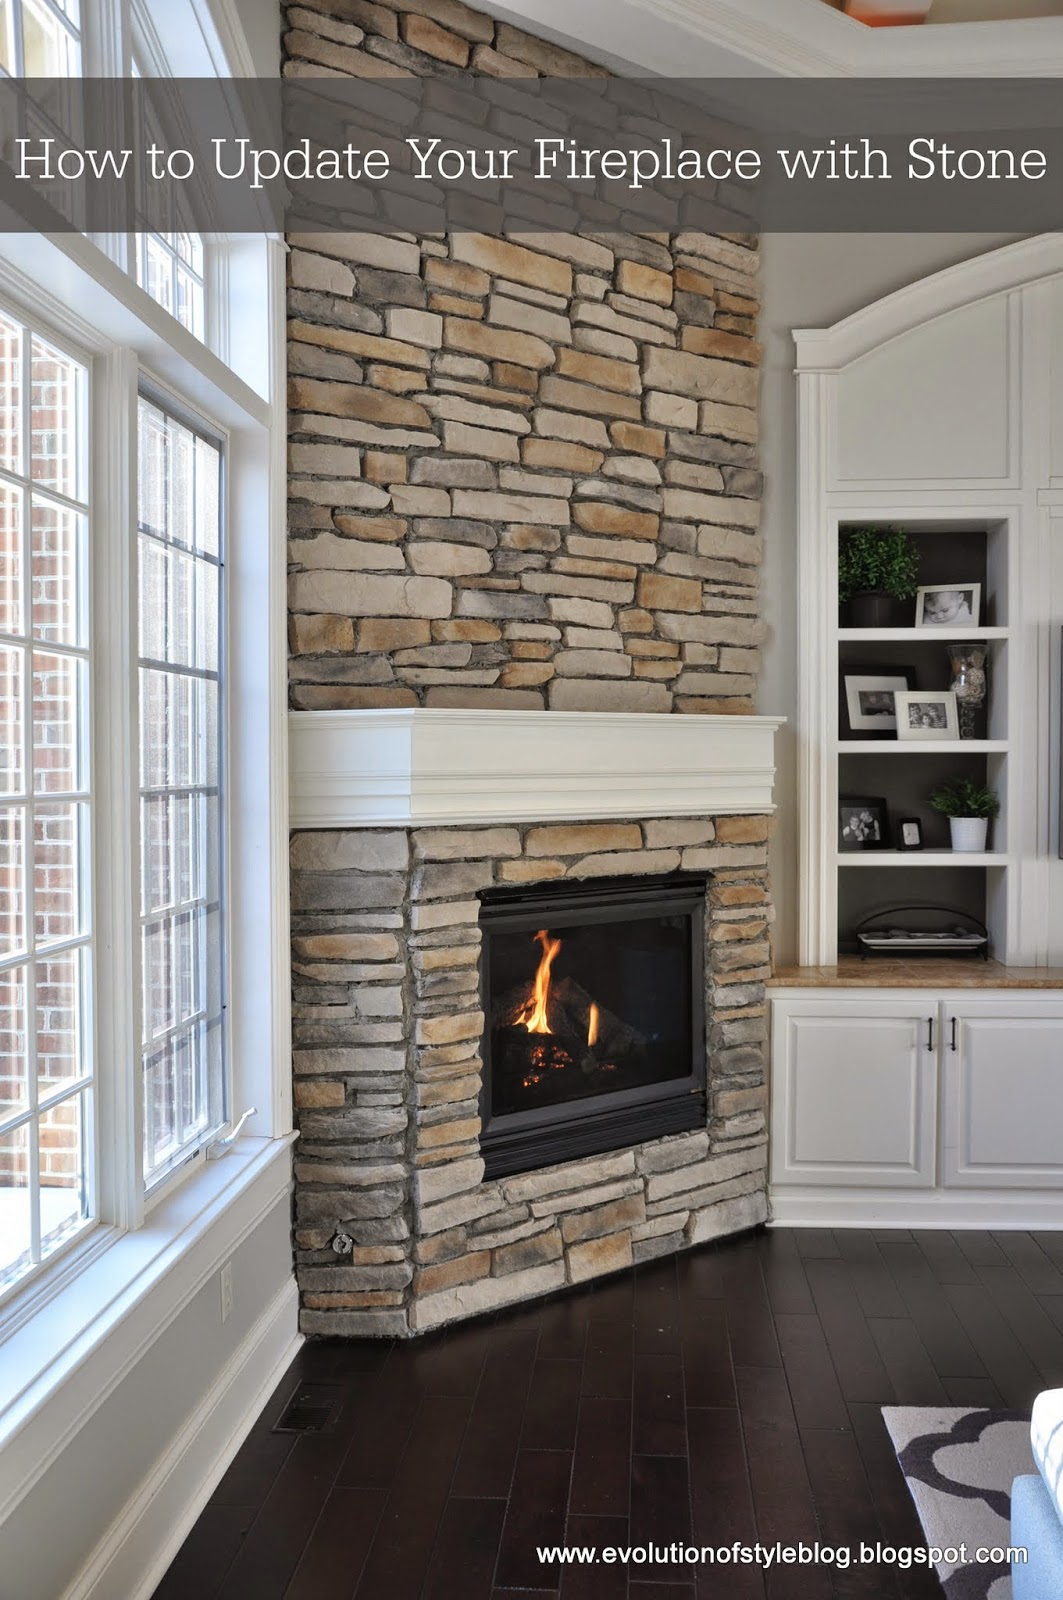 redoing kitchen buy undermount sink how to update your fireplace with stone - evolution of style